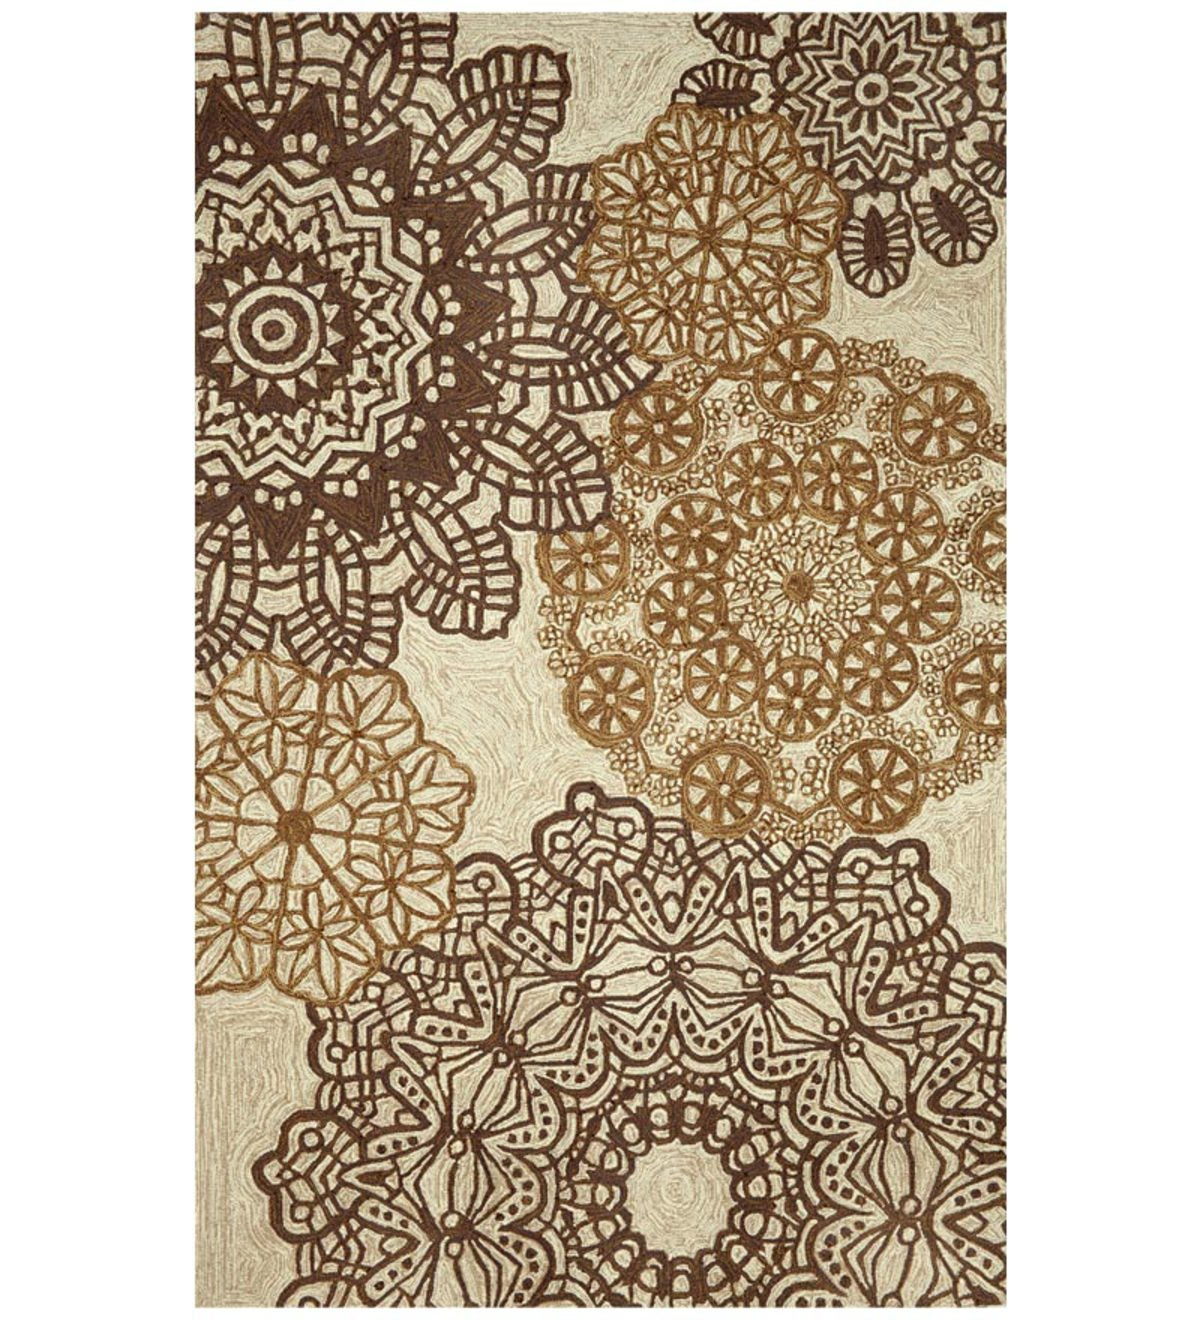 8' Round Ravella Crochet Area Rug - Neutral